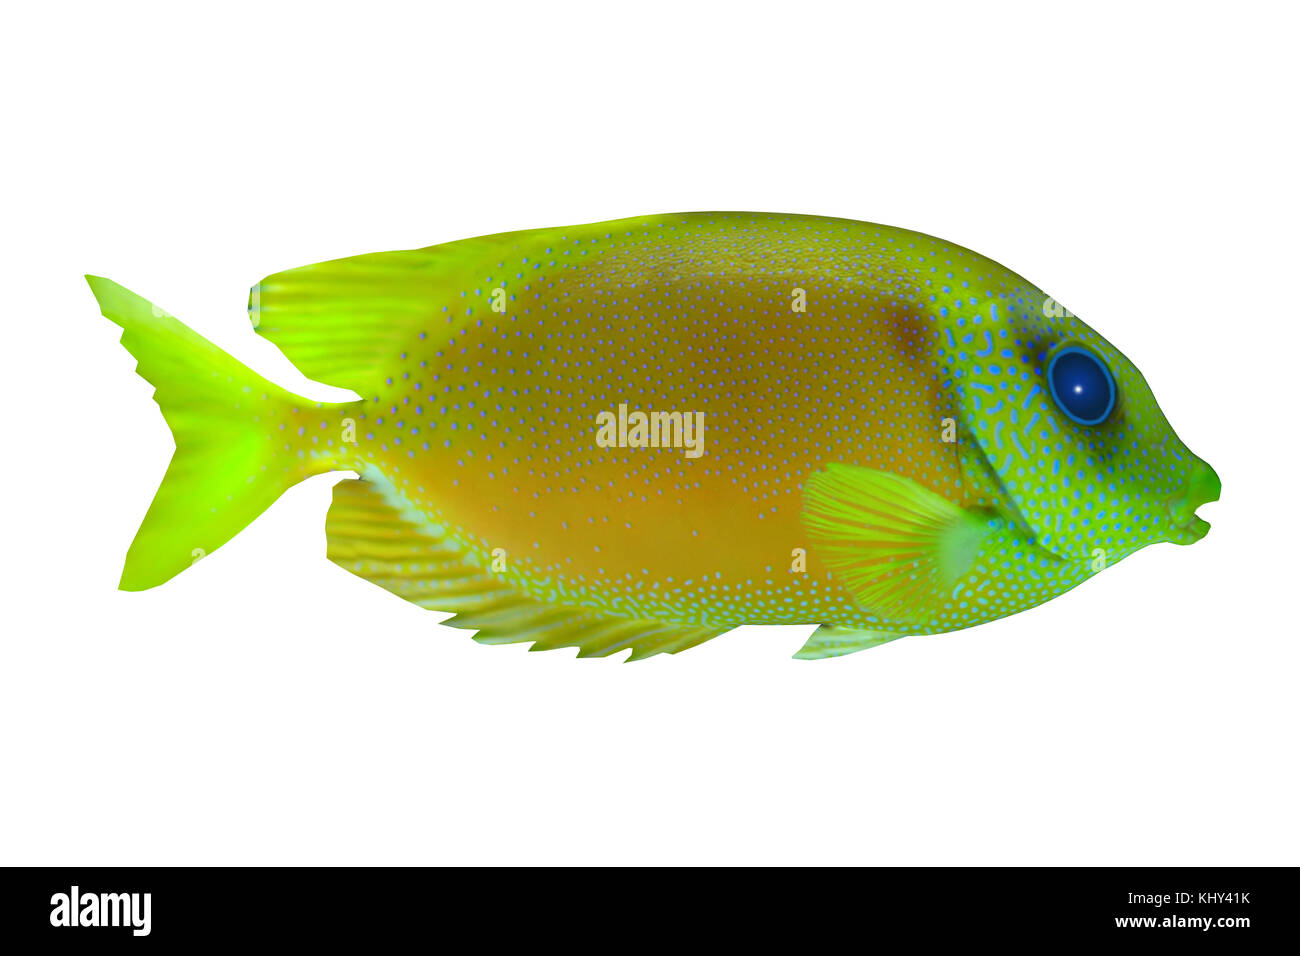 Lemonpeel Angelfish - The Lemonpeel Angelfish is a saltwater species reef fish in tropical regions of Indo-Pacific - Stock Image